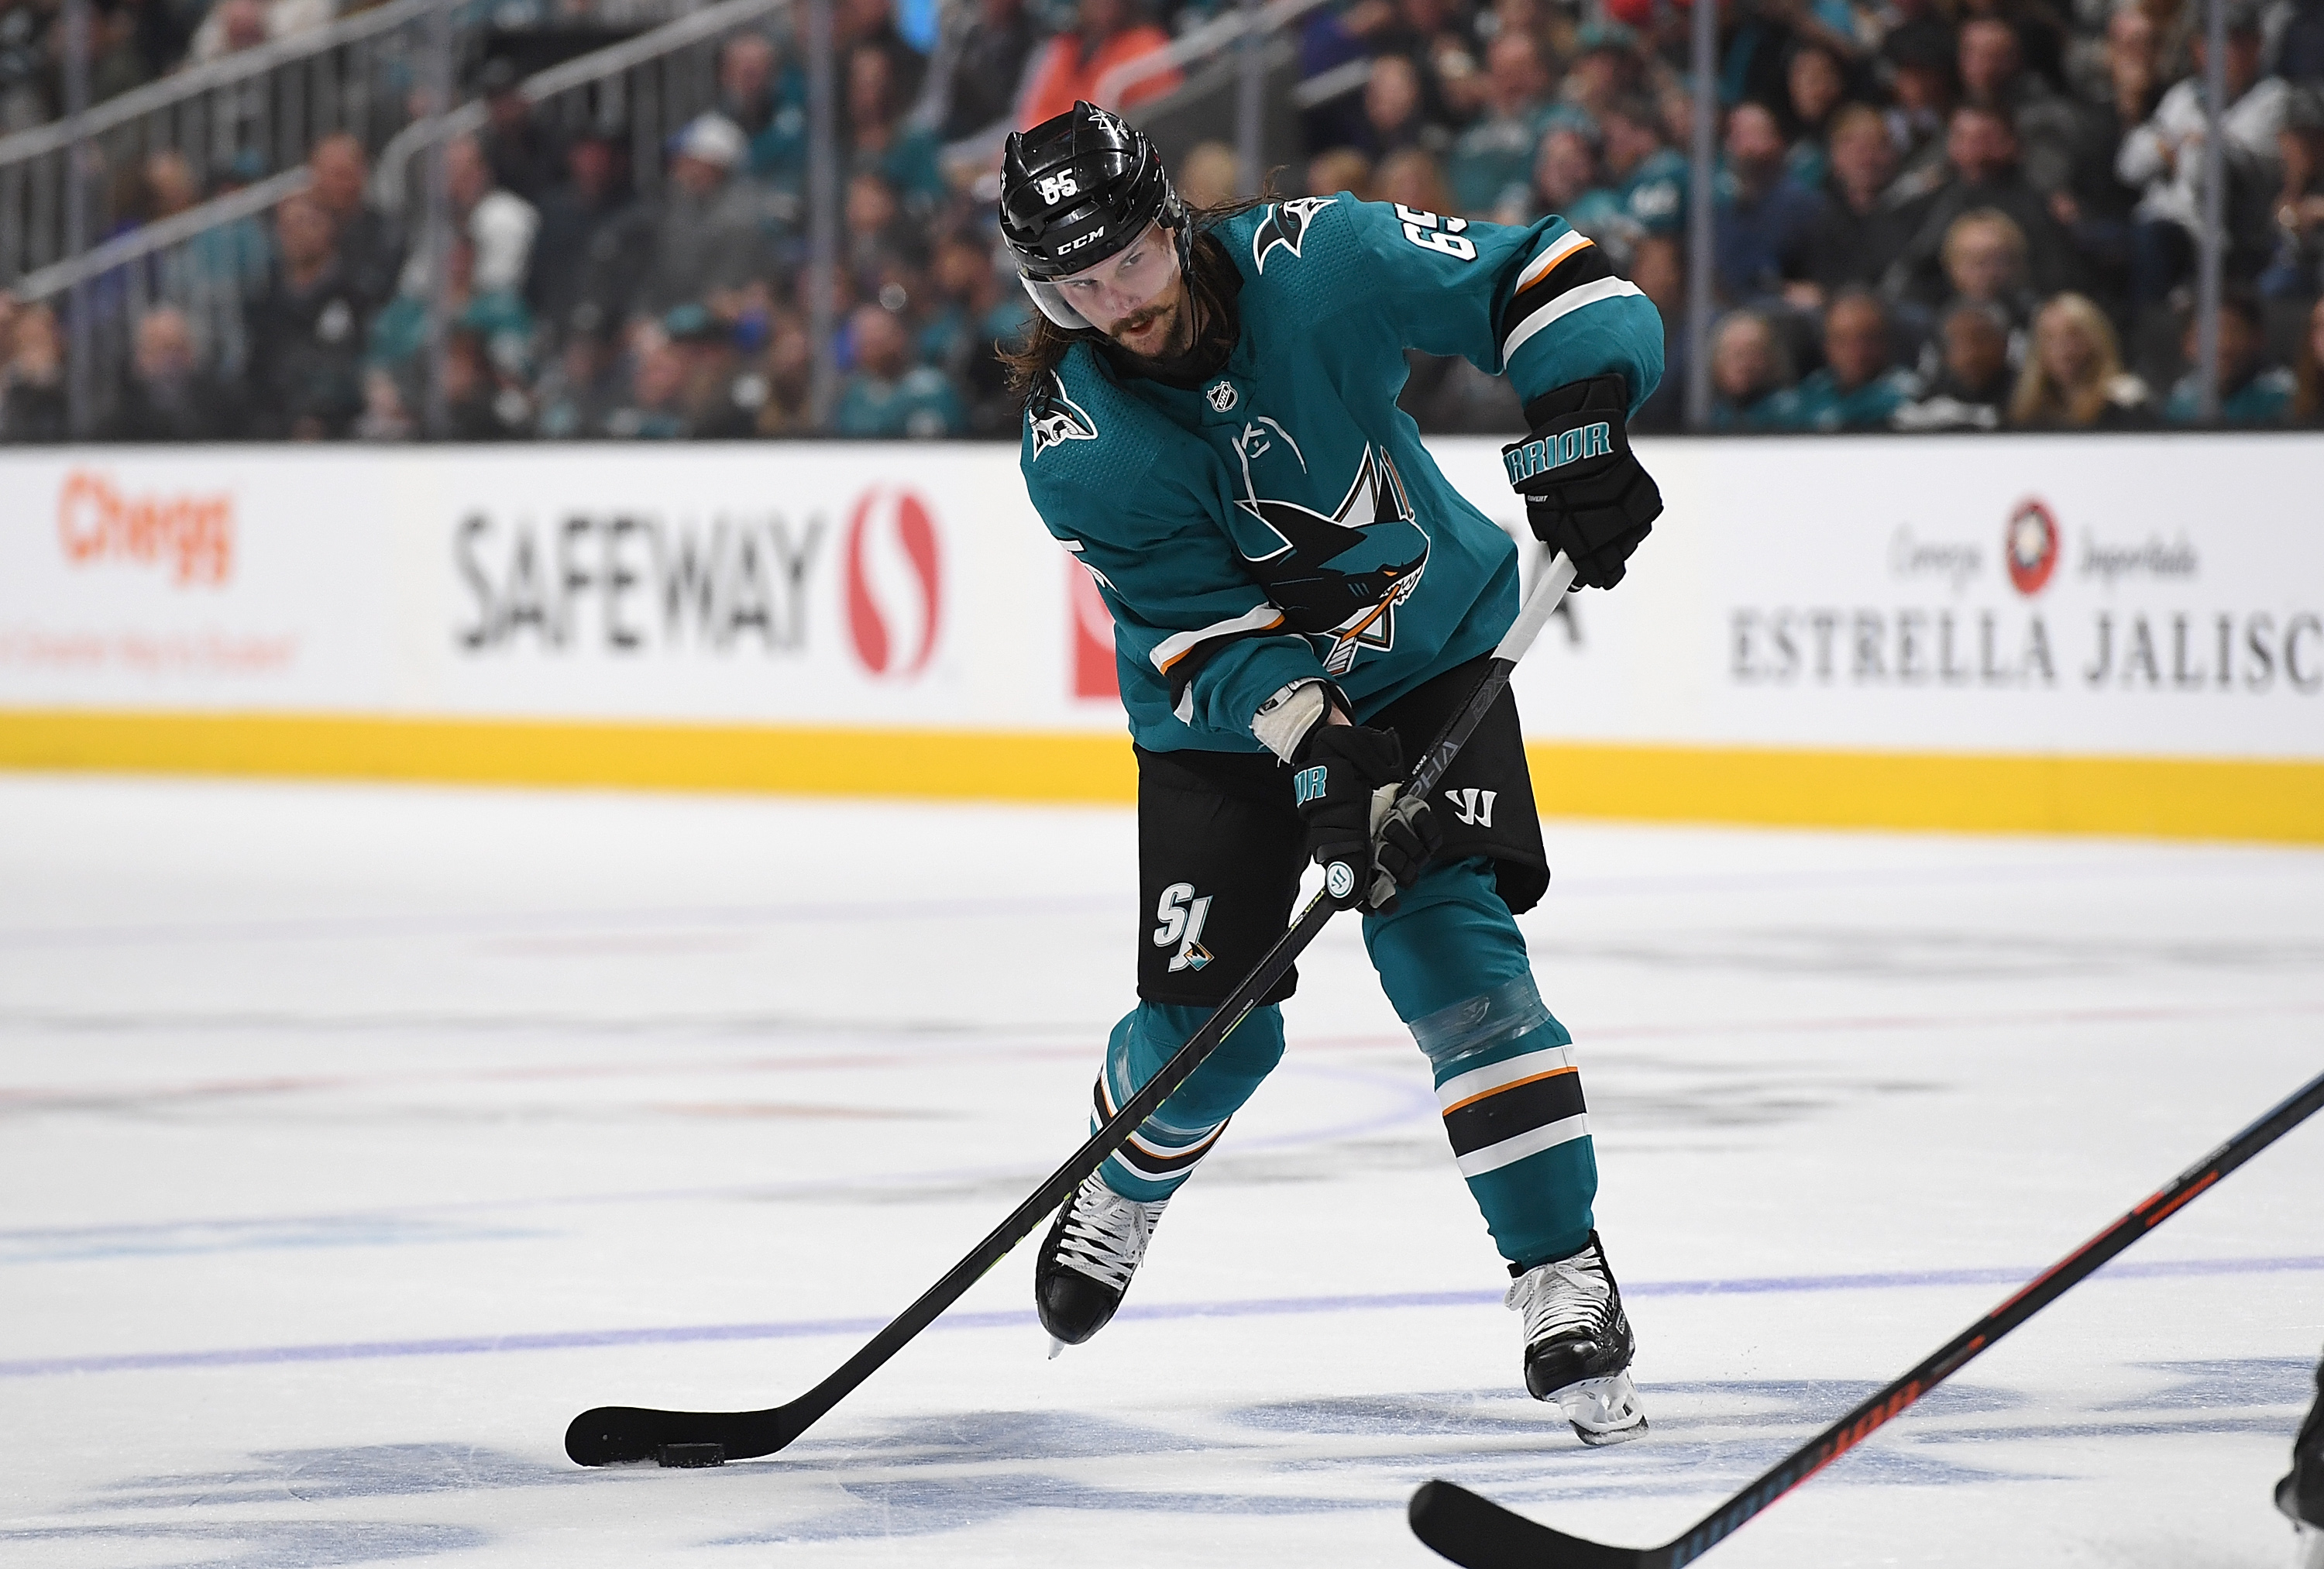 Erik Karlsson of the San Jose Sharks passes the puck to assist on a goal to Evander Kane against the Vegas Golden Knights during the second period in Game 1 of the First Round during the 2019 NHL Stanley Cup Playoffs at SAP Center on April 10, 2019